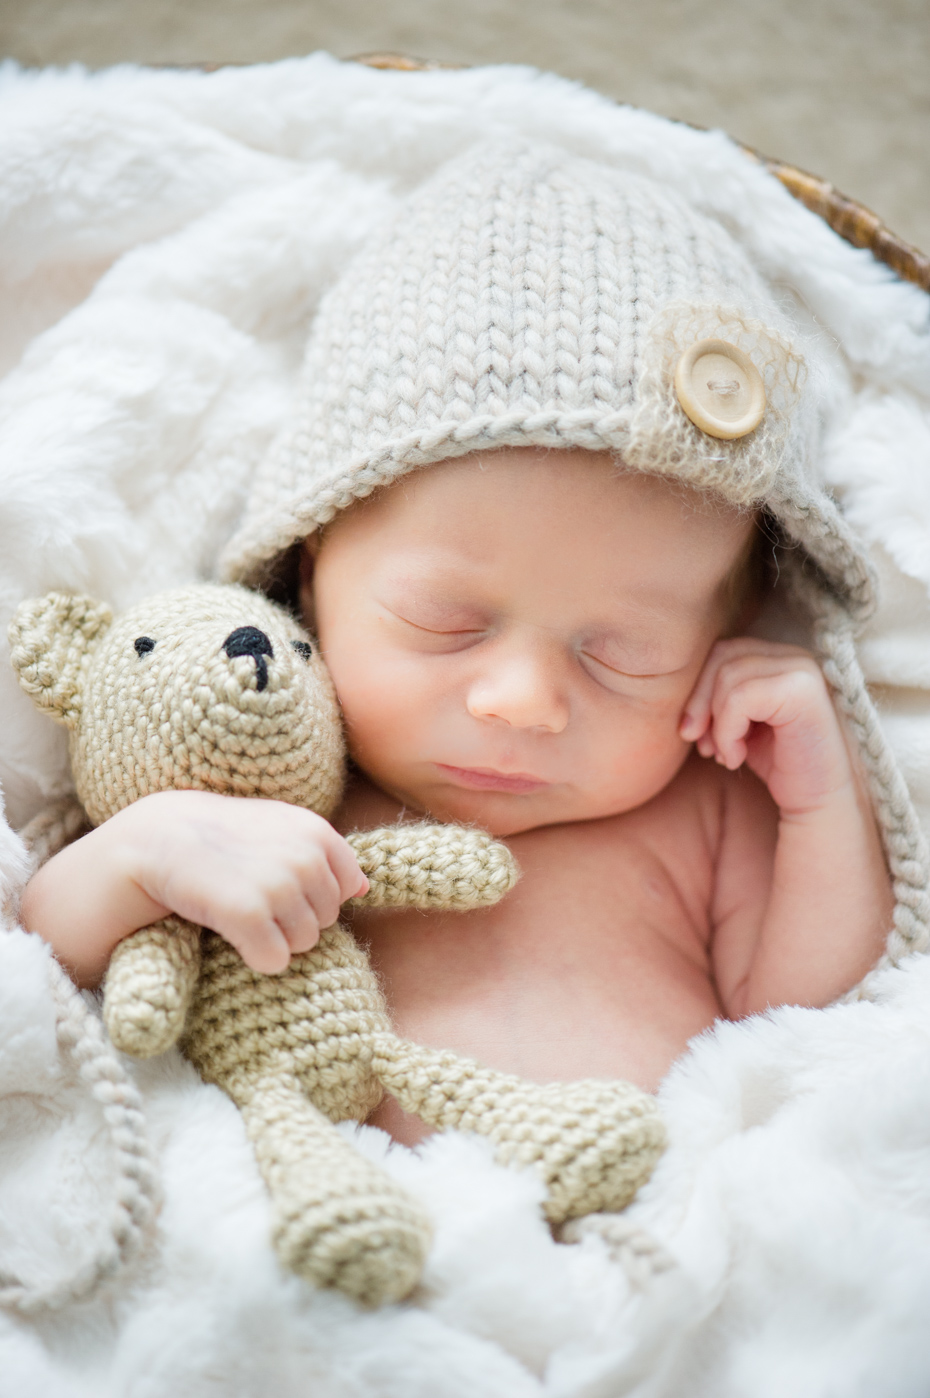 Outfits for newborn photos